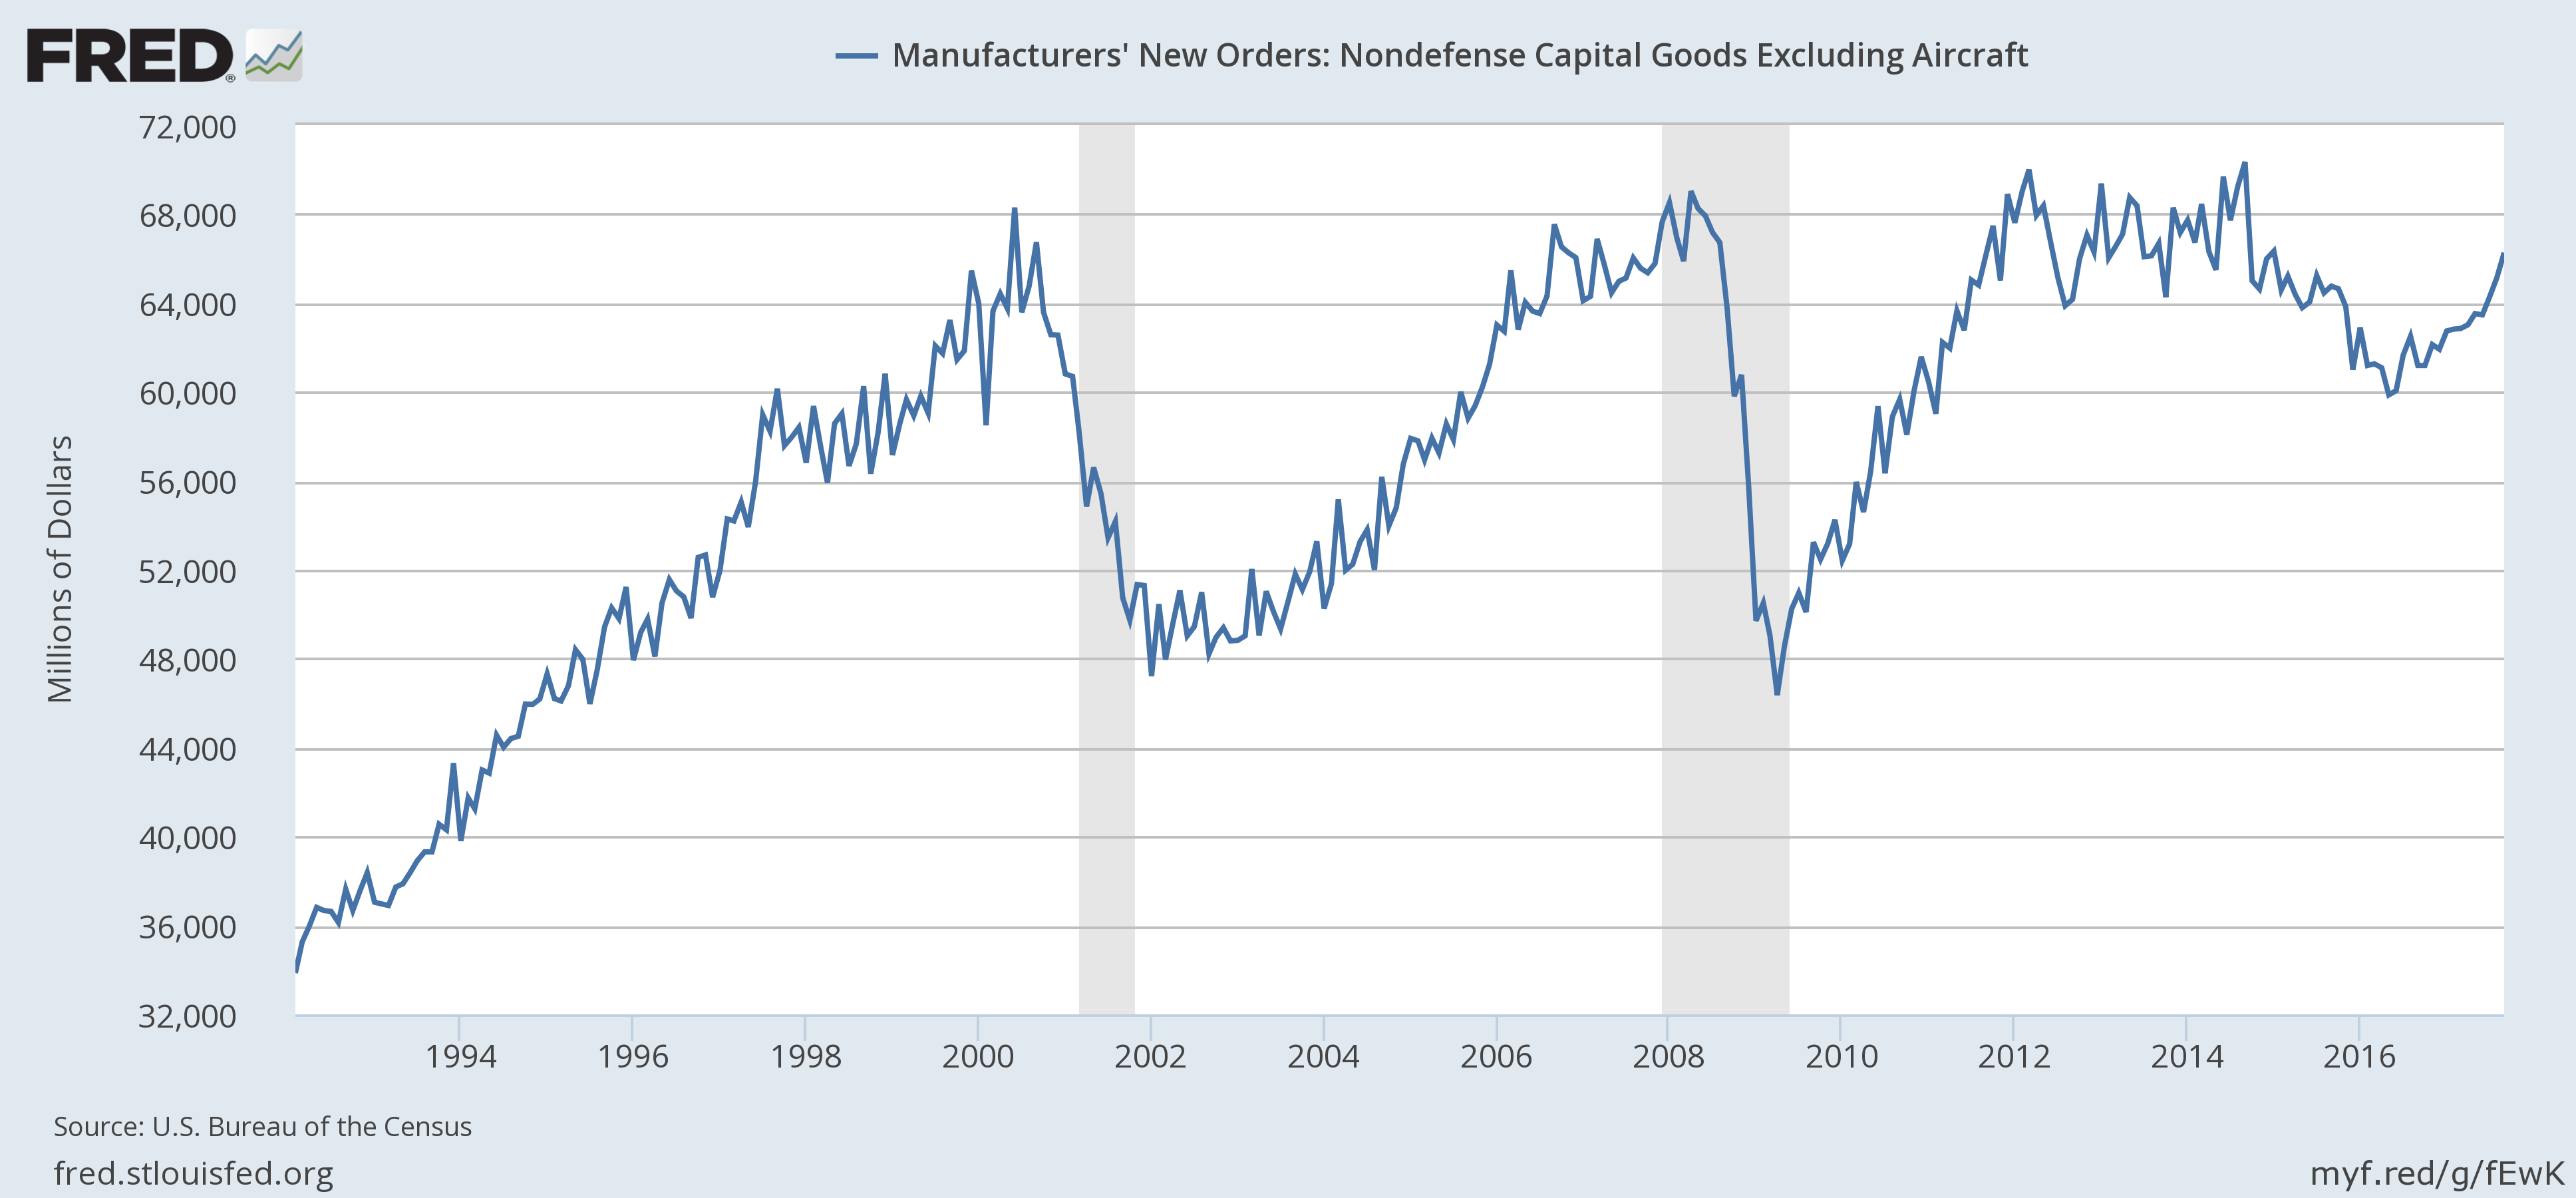 US Manufacturers' New Orders, 1994 - 2016